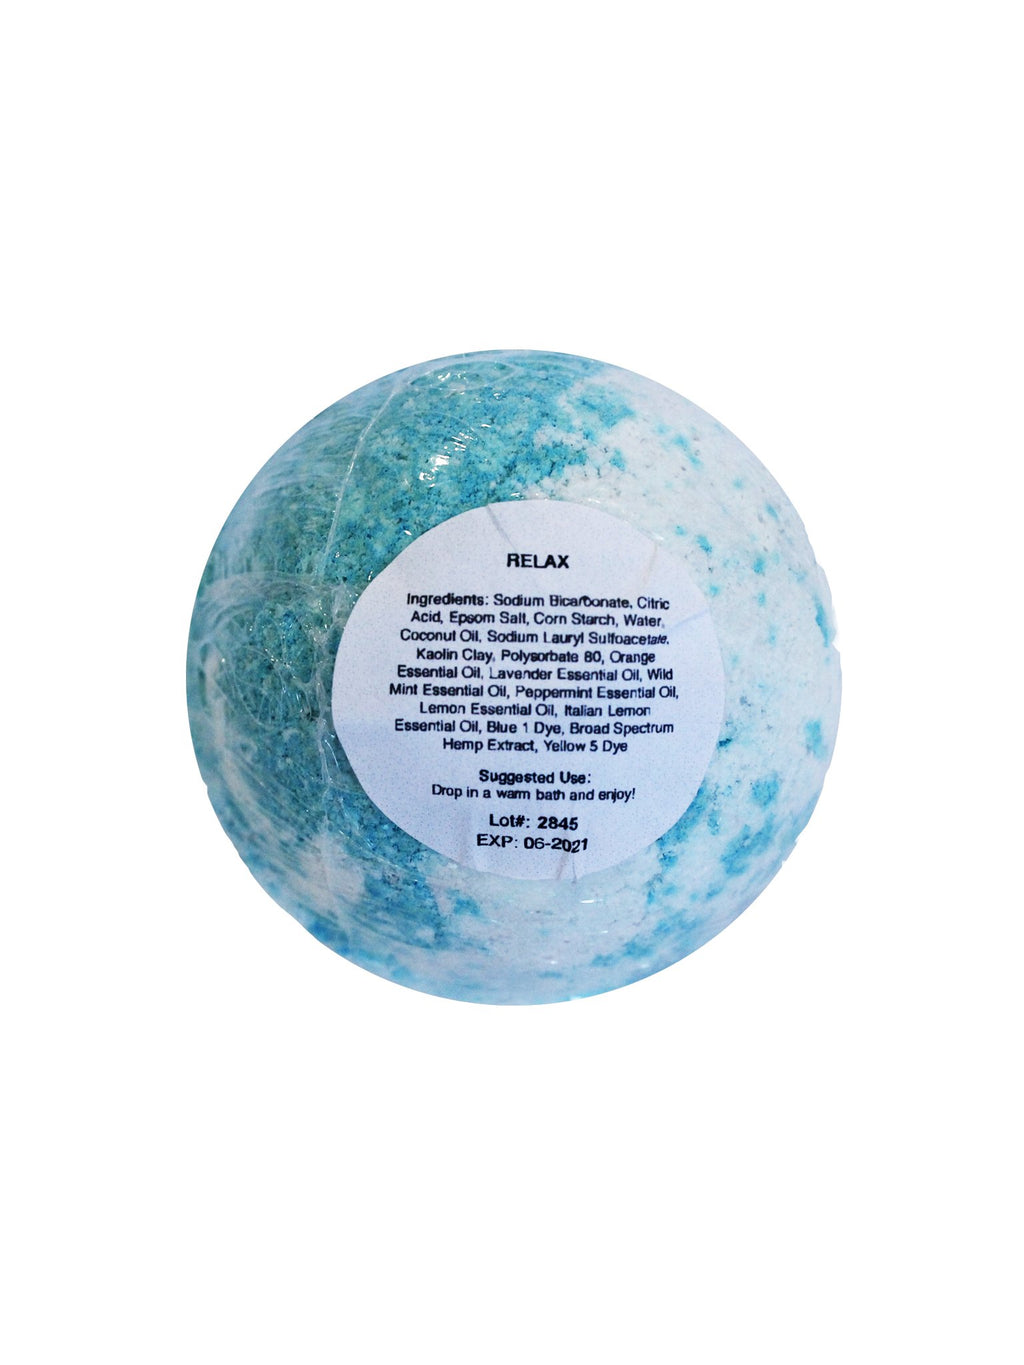 relax bath bomb label